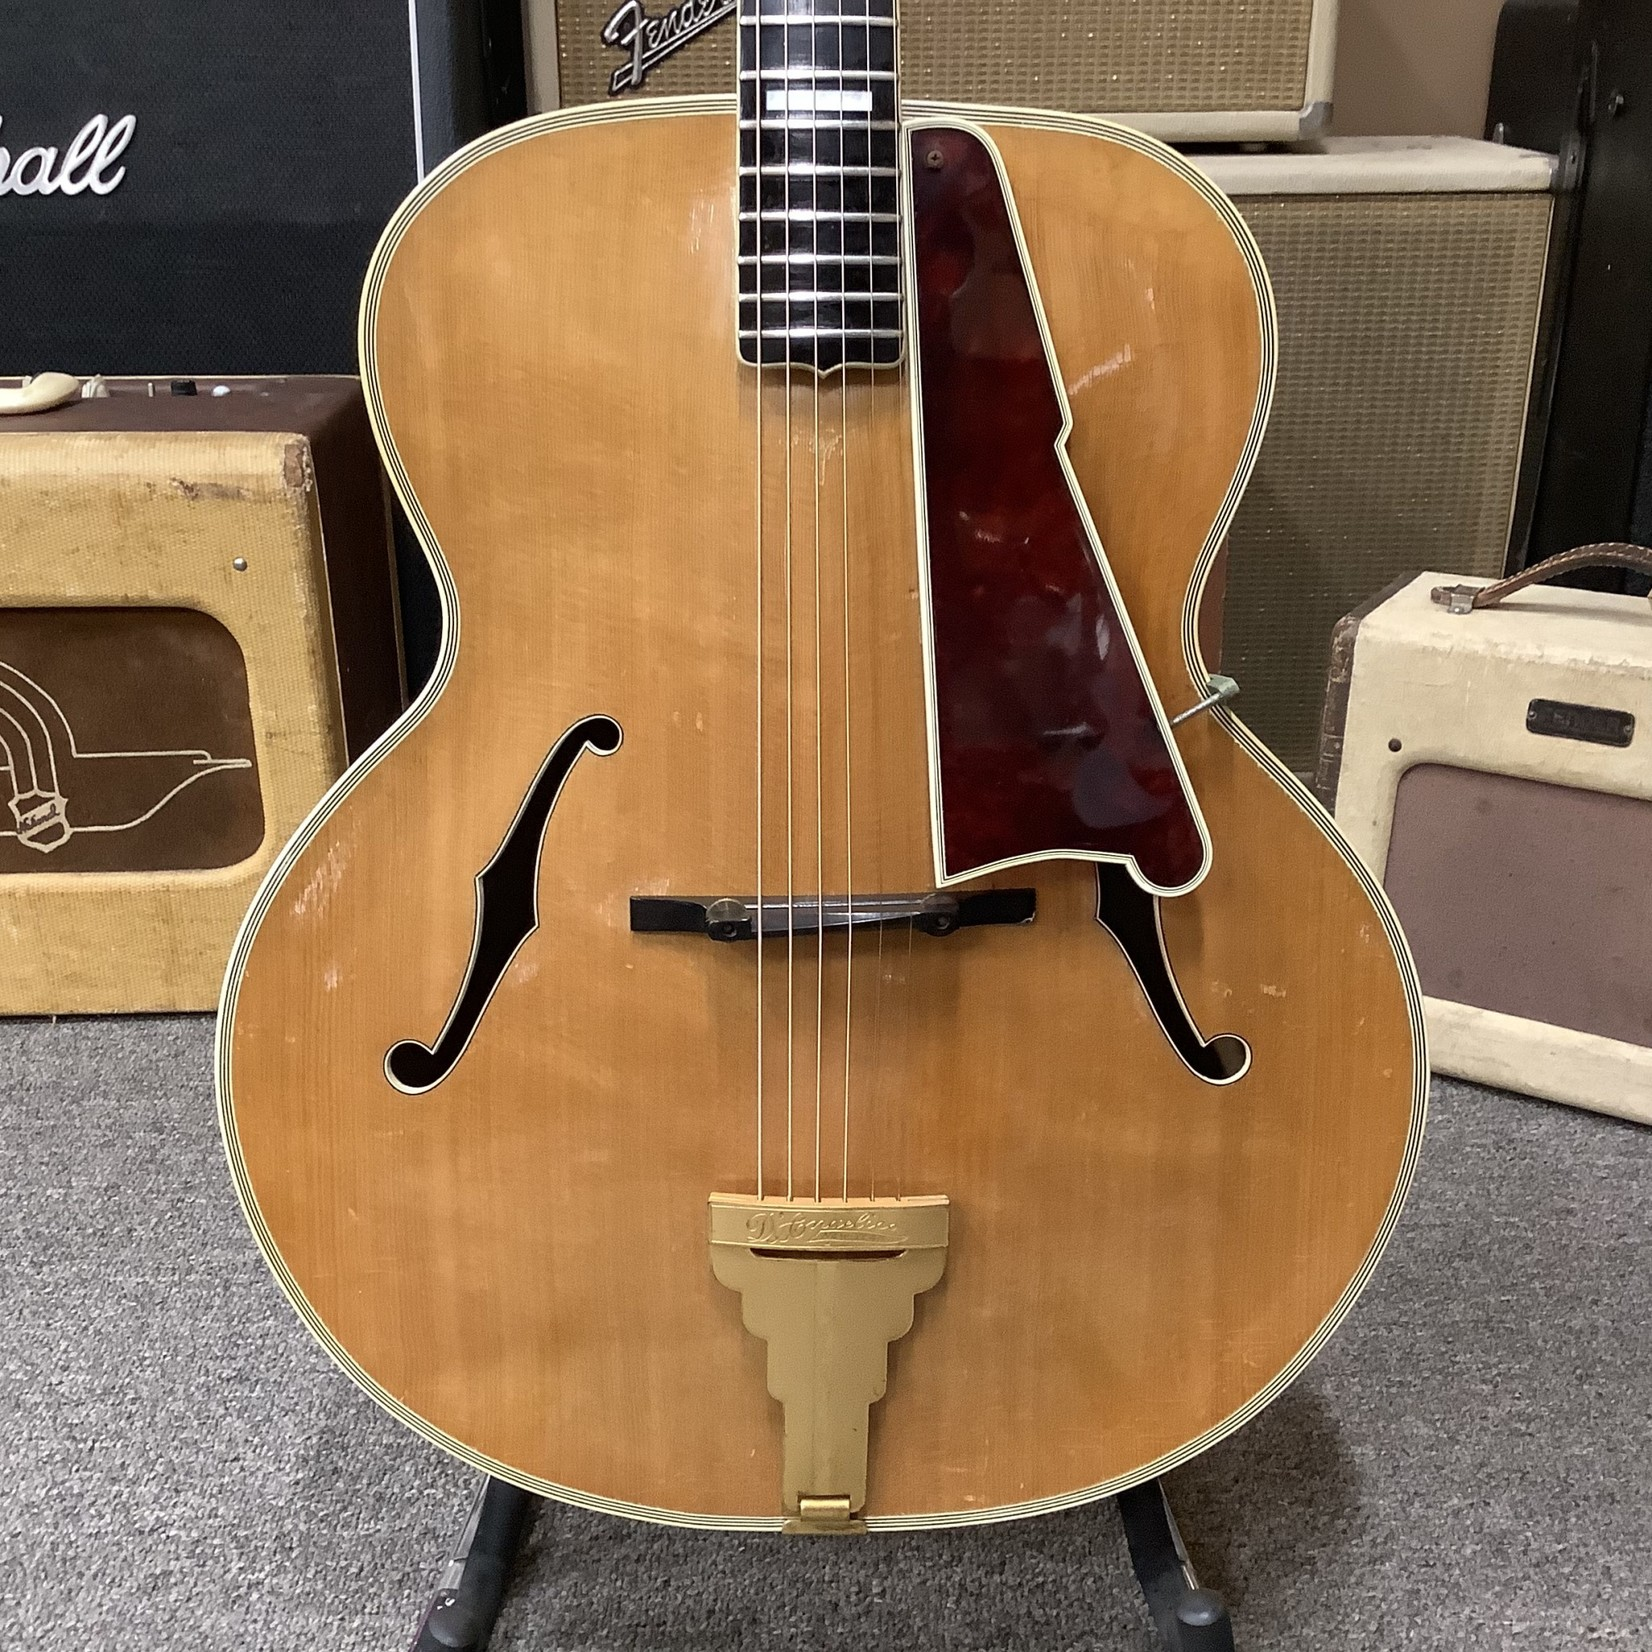 D'Angelico 1942 D'Angelico Special